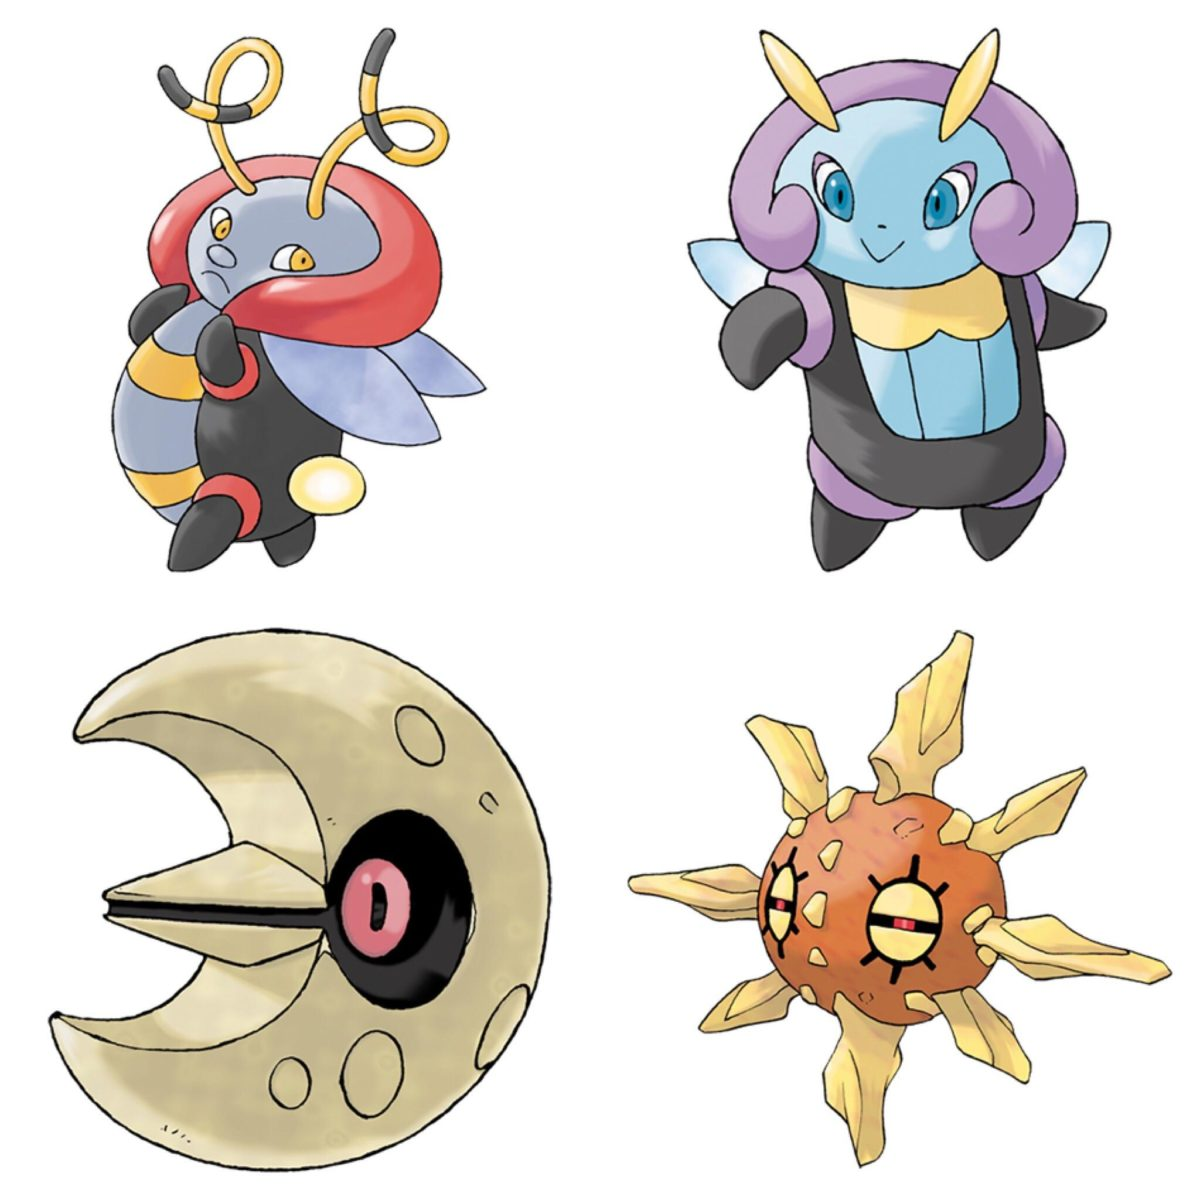 I'm guessing the reason for the change of regionals are because they …